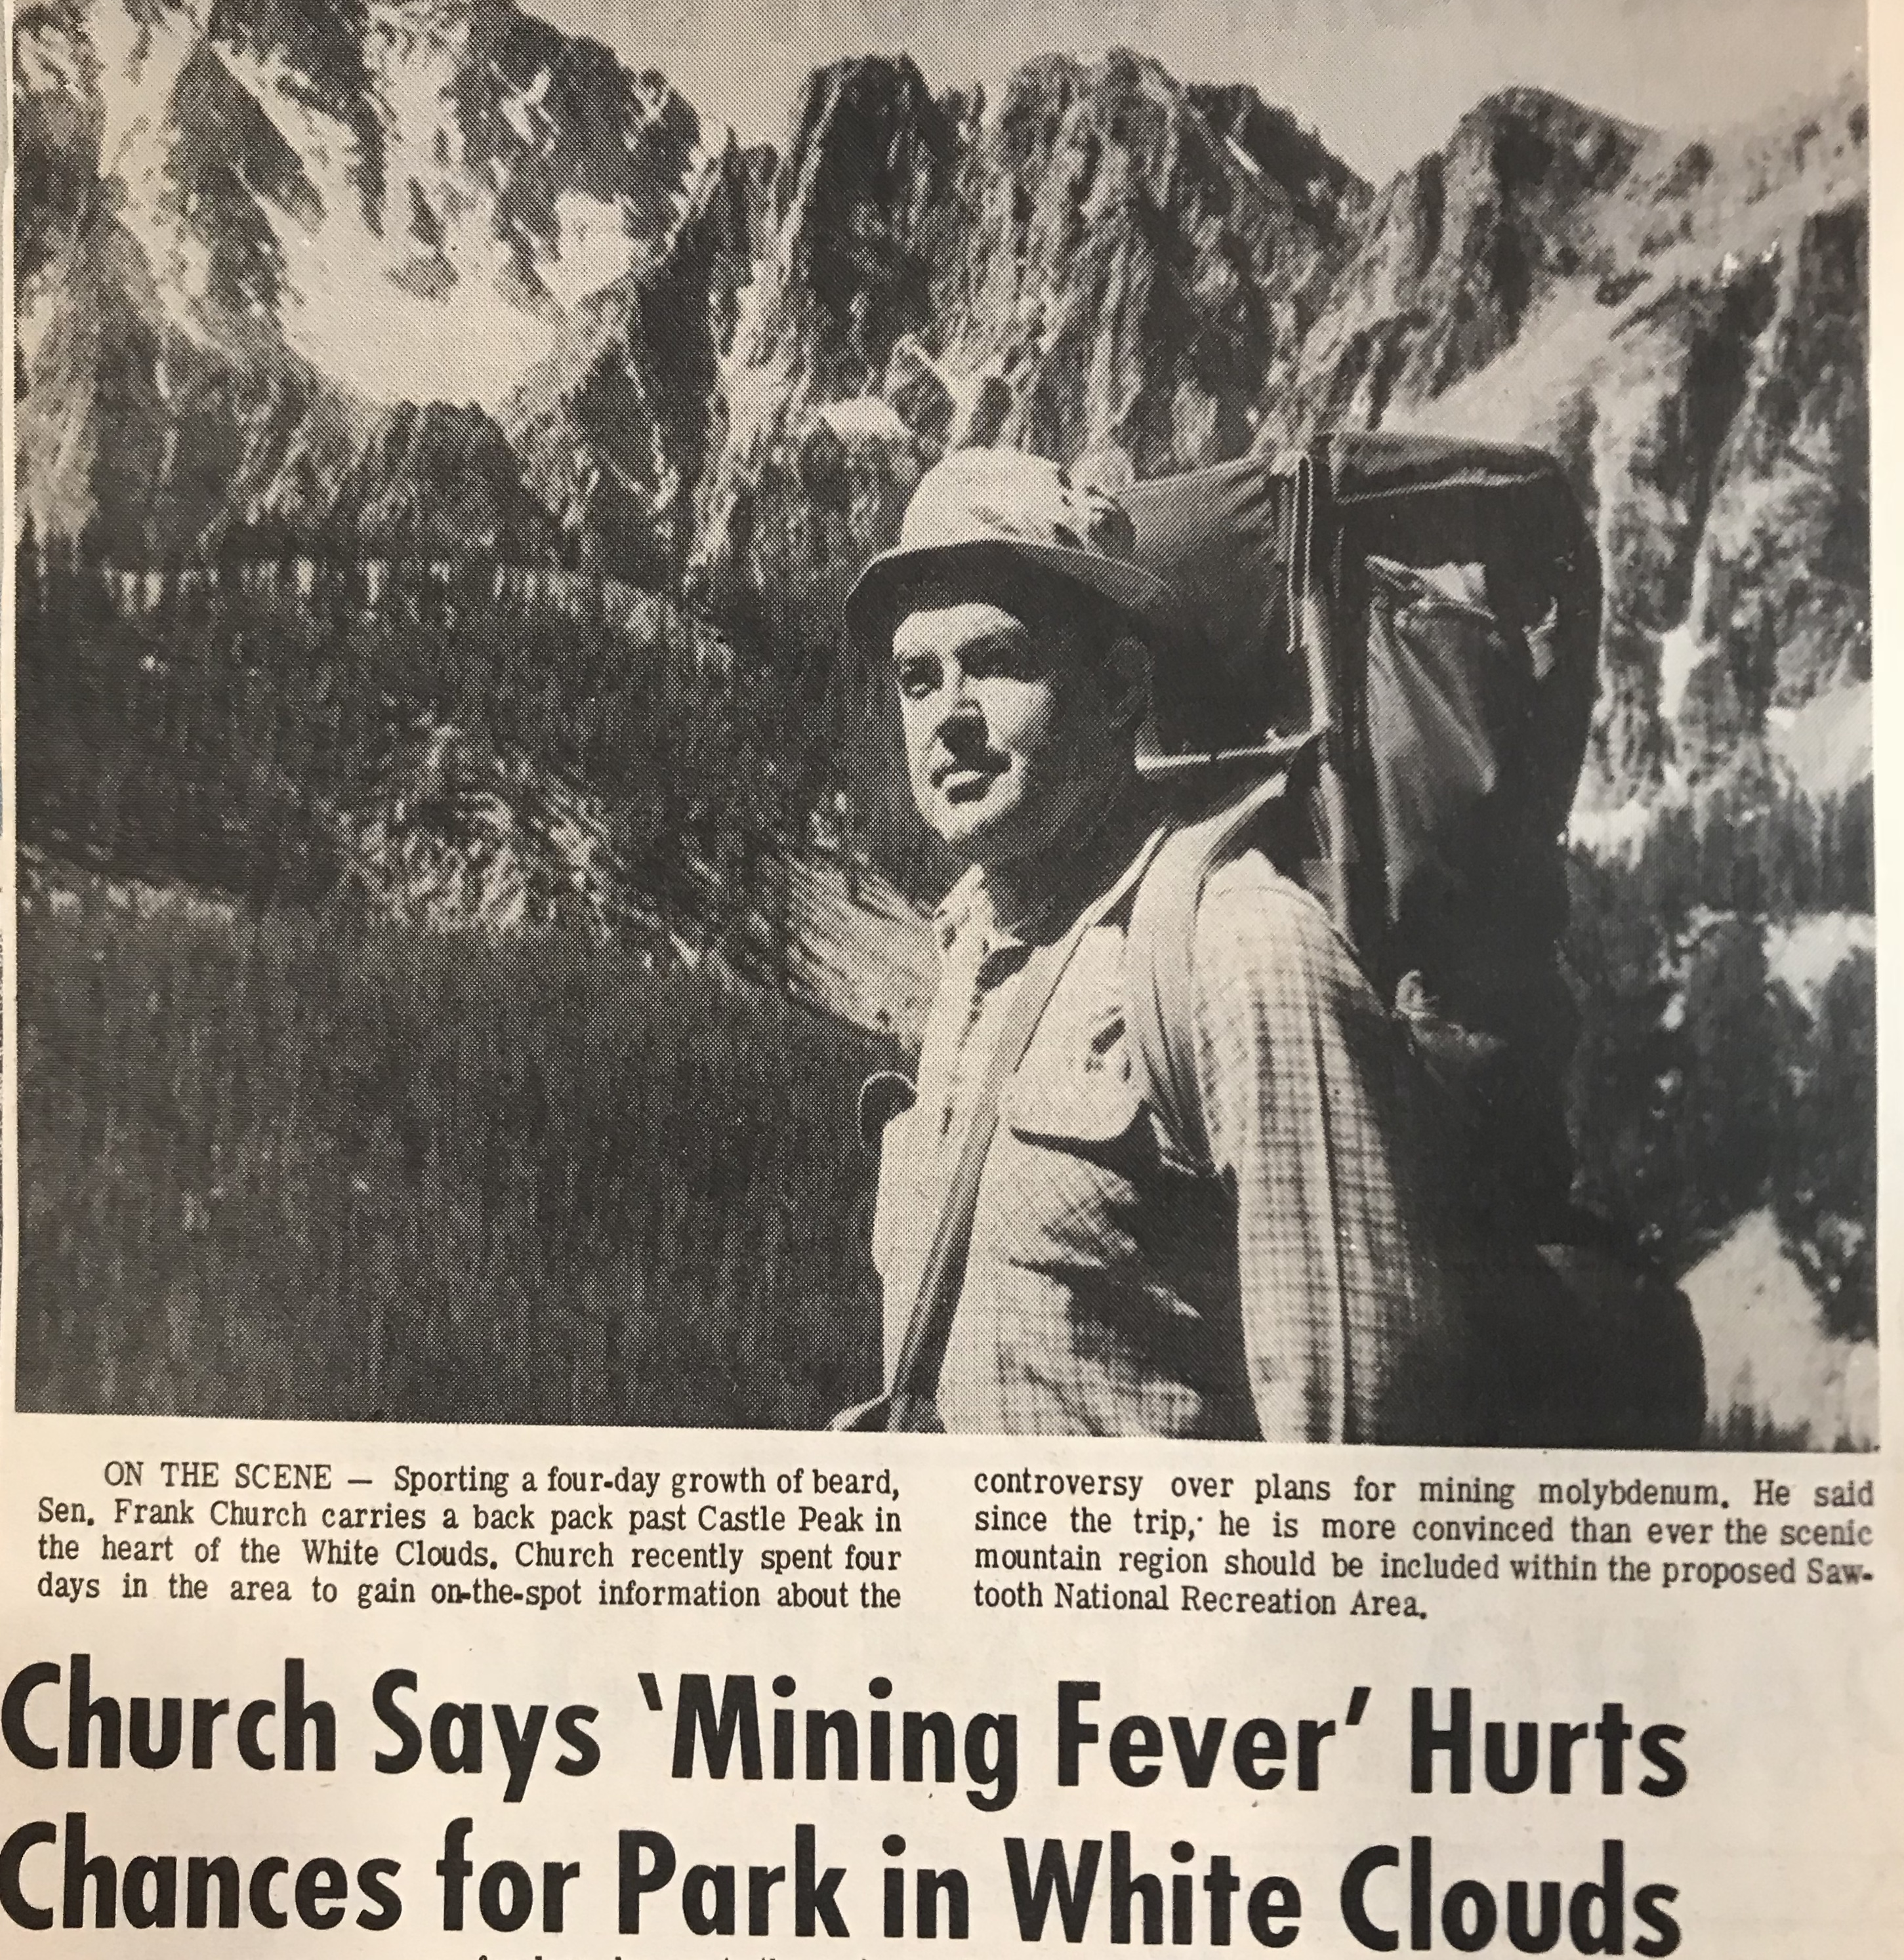 This photo was part of an Idaho State Journal article published on July 7, 1969.